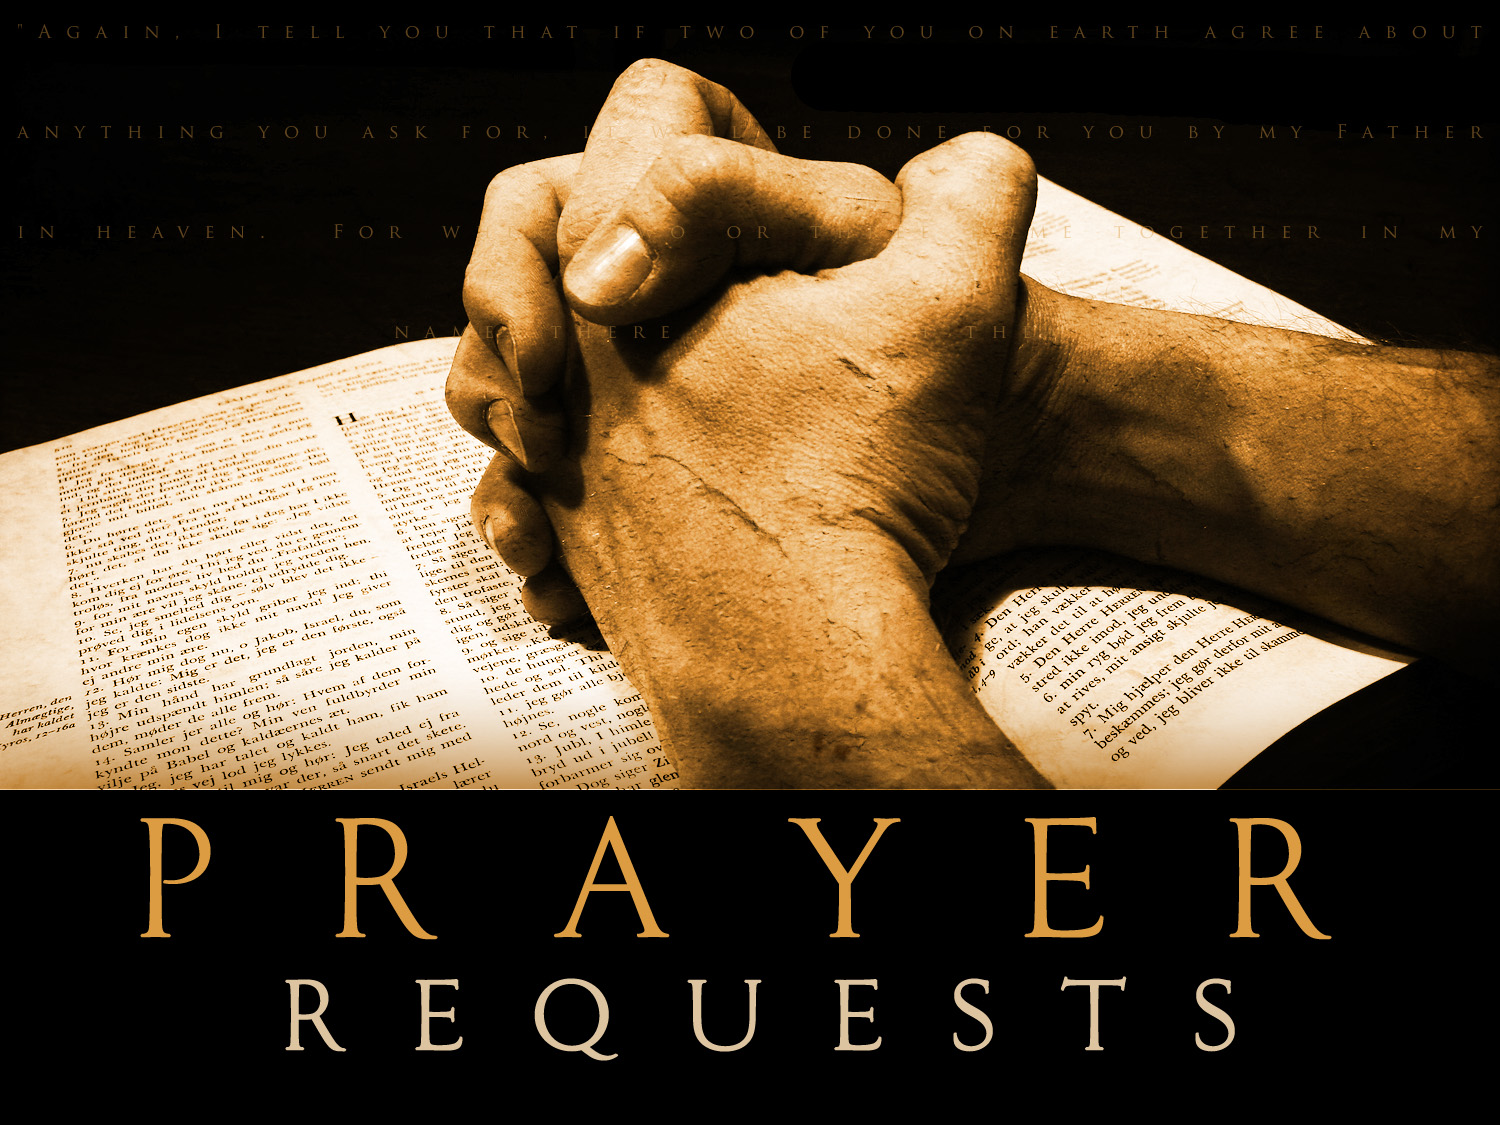 praying images praying hd wallpaper and background photos (26901866)